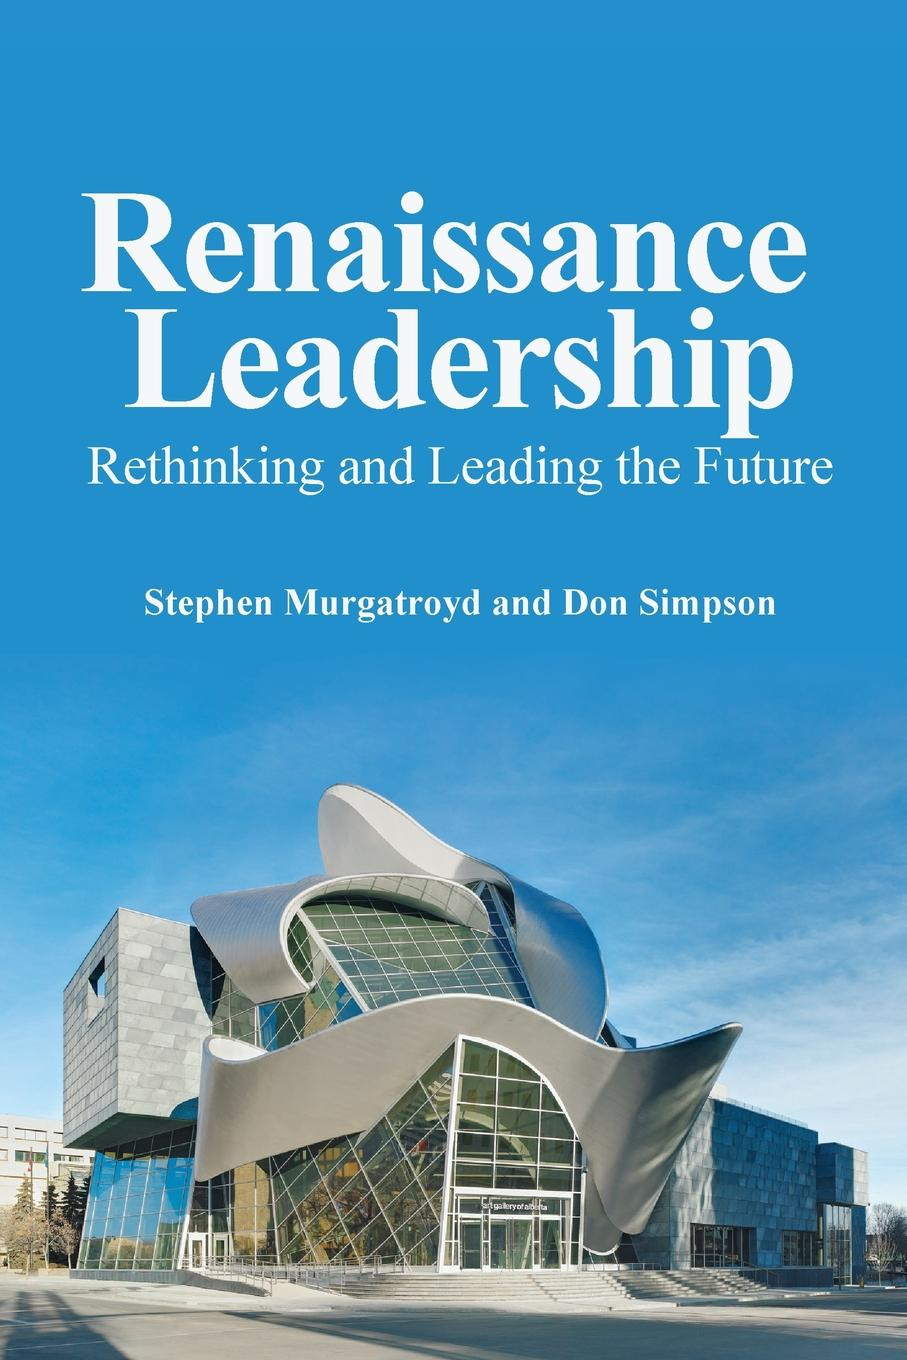 Stephen Murgatroyd, Don Simpson Renaissance Leadership suzanne morse w smart communities how citizens and local leaders can use strategic thinking to build a brighter future